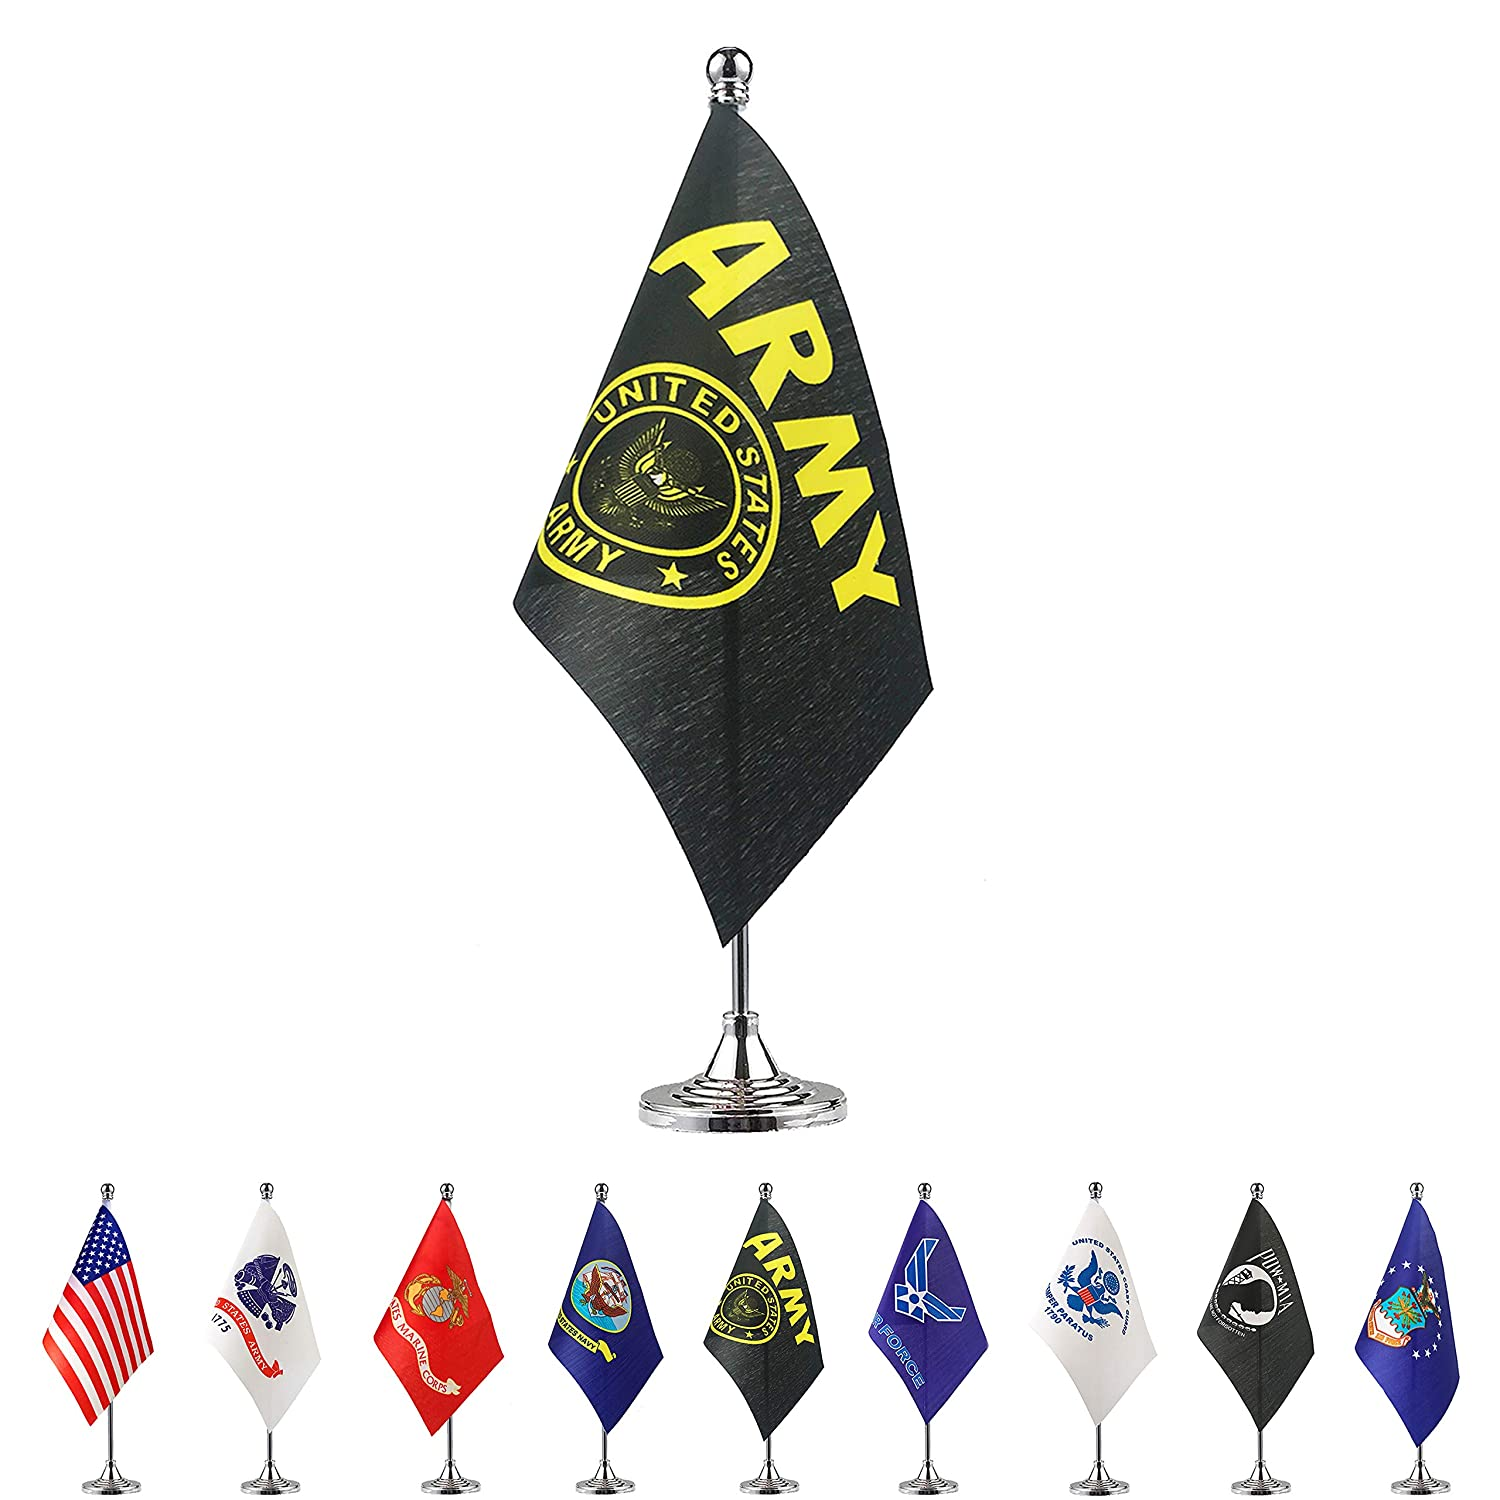 TSMD US Army Gold Crest Desk Flag Small Mini United States Military Table Flags with Stand Base,Decorations Supplies for Army Party Events Celebration